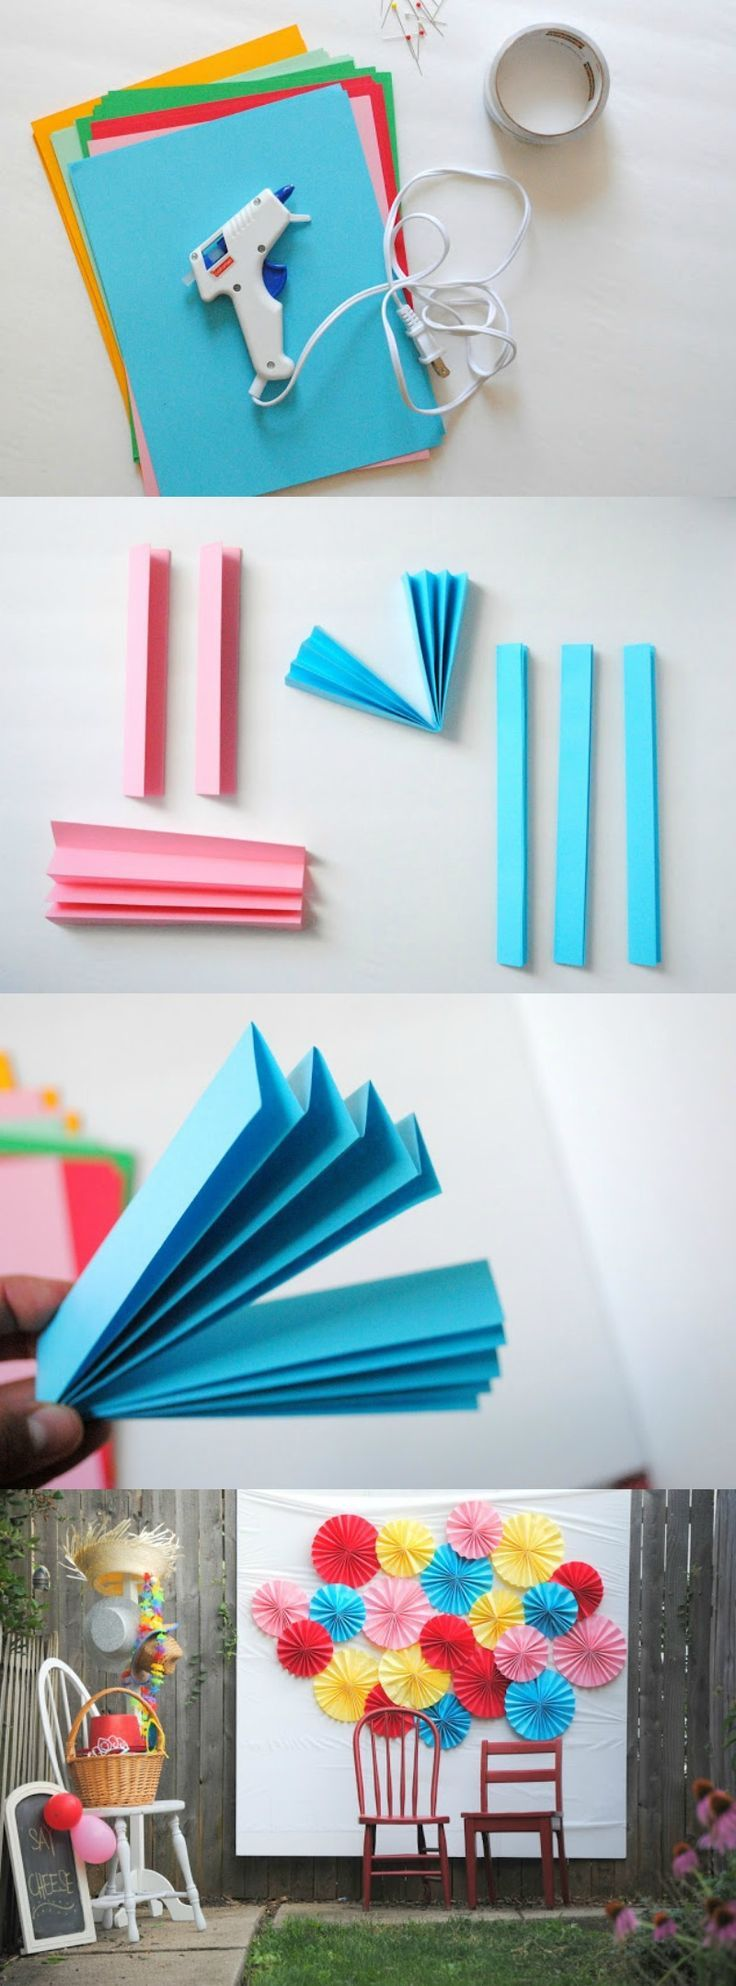 This is how I made the photo booth backdrop for our backyard movie night last week. It's simple, plus I love how it turned out and the pretty colors!